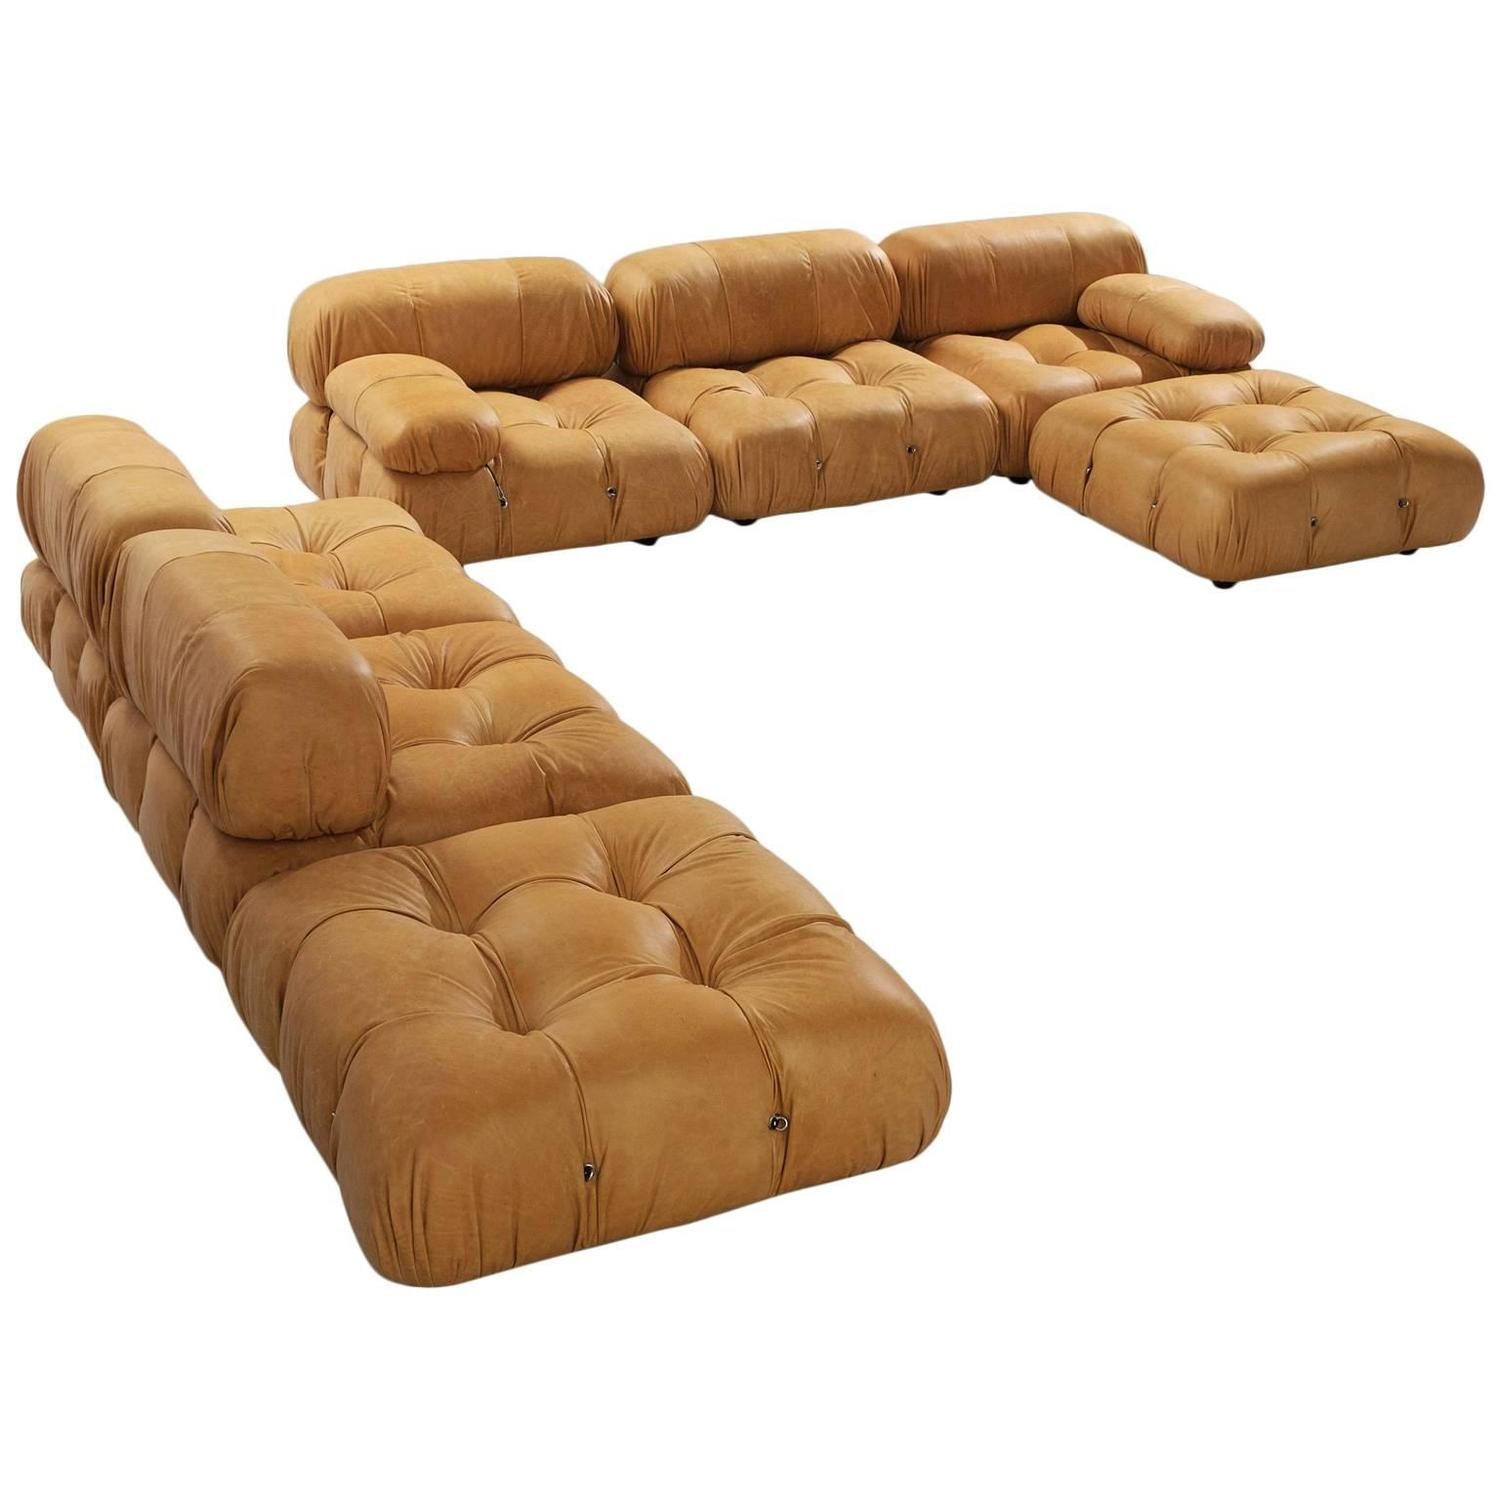 mario bellini sectional camaleonda sofa in cognac leather at 1stdibs. Black Bedroom Furniture Sets. Home Design Ideas